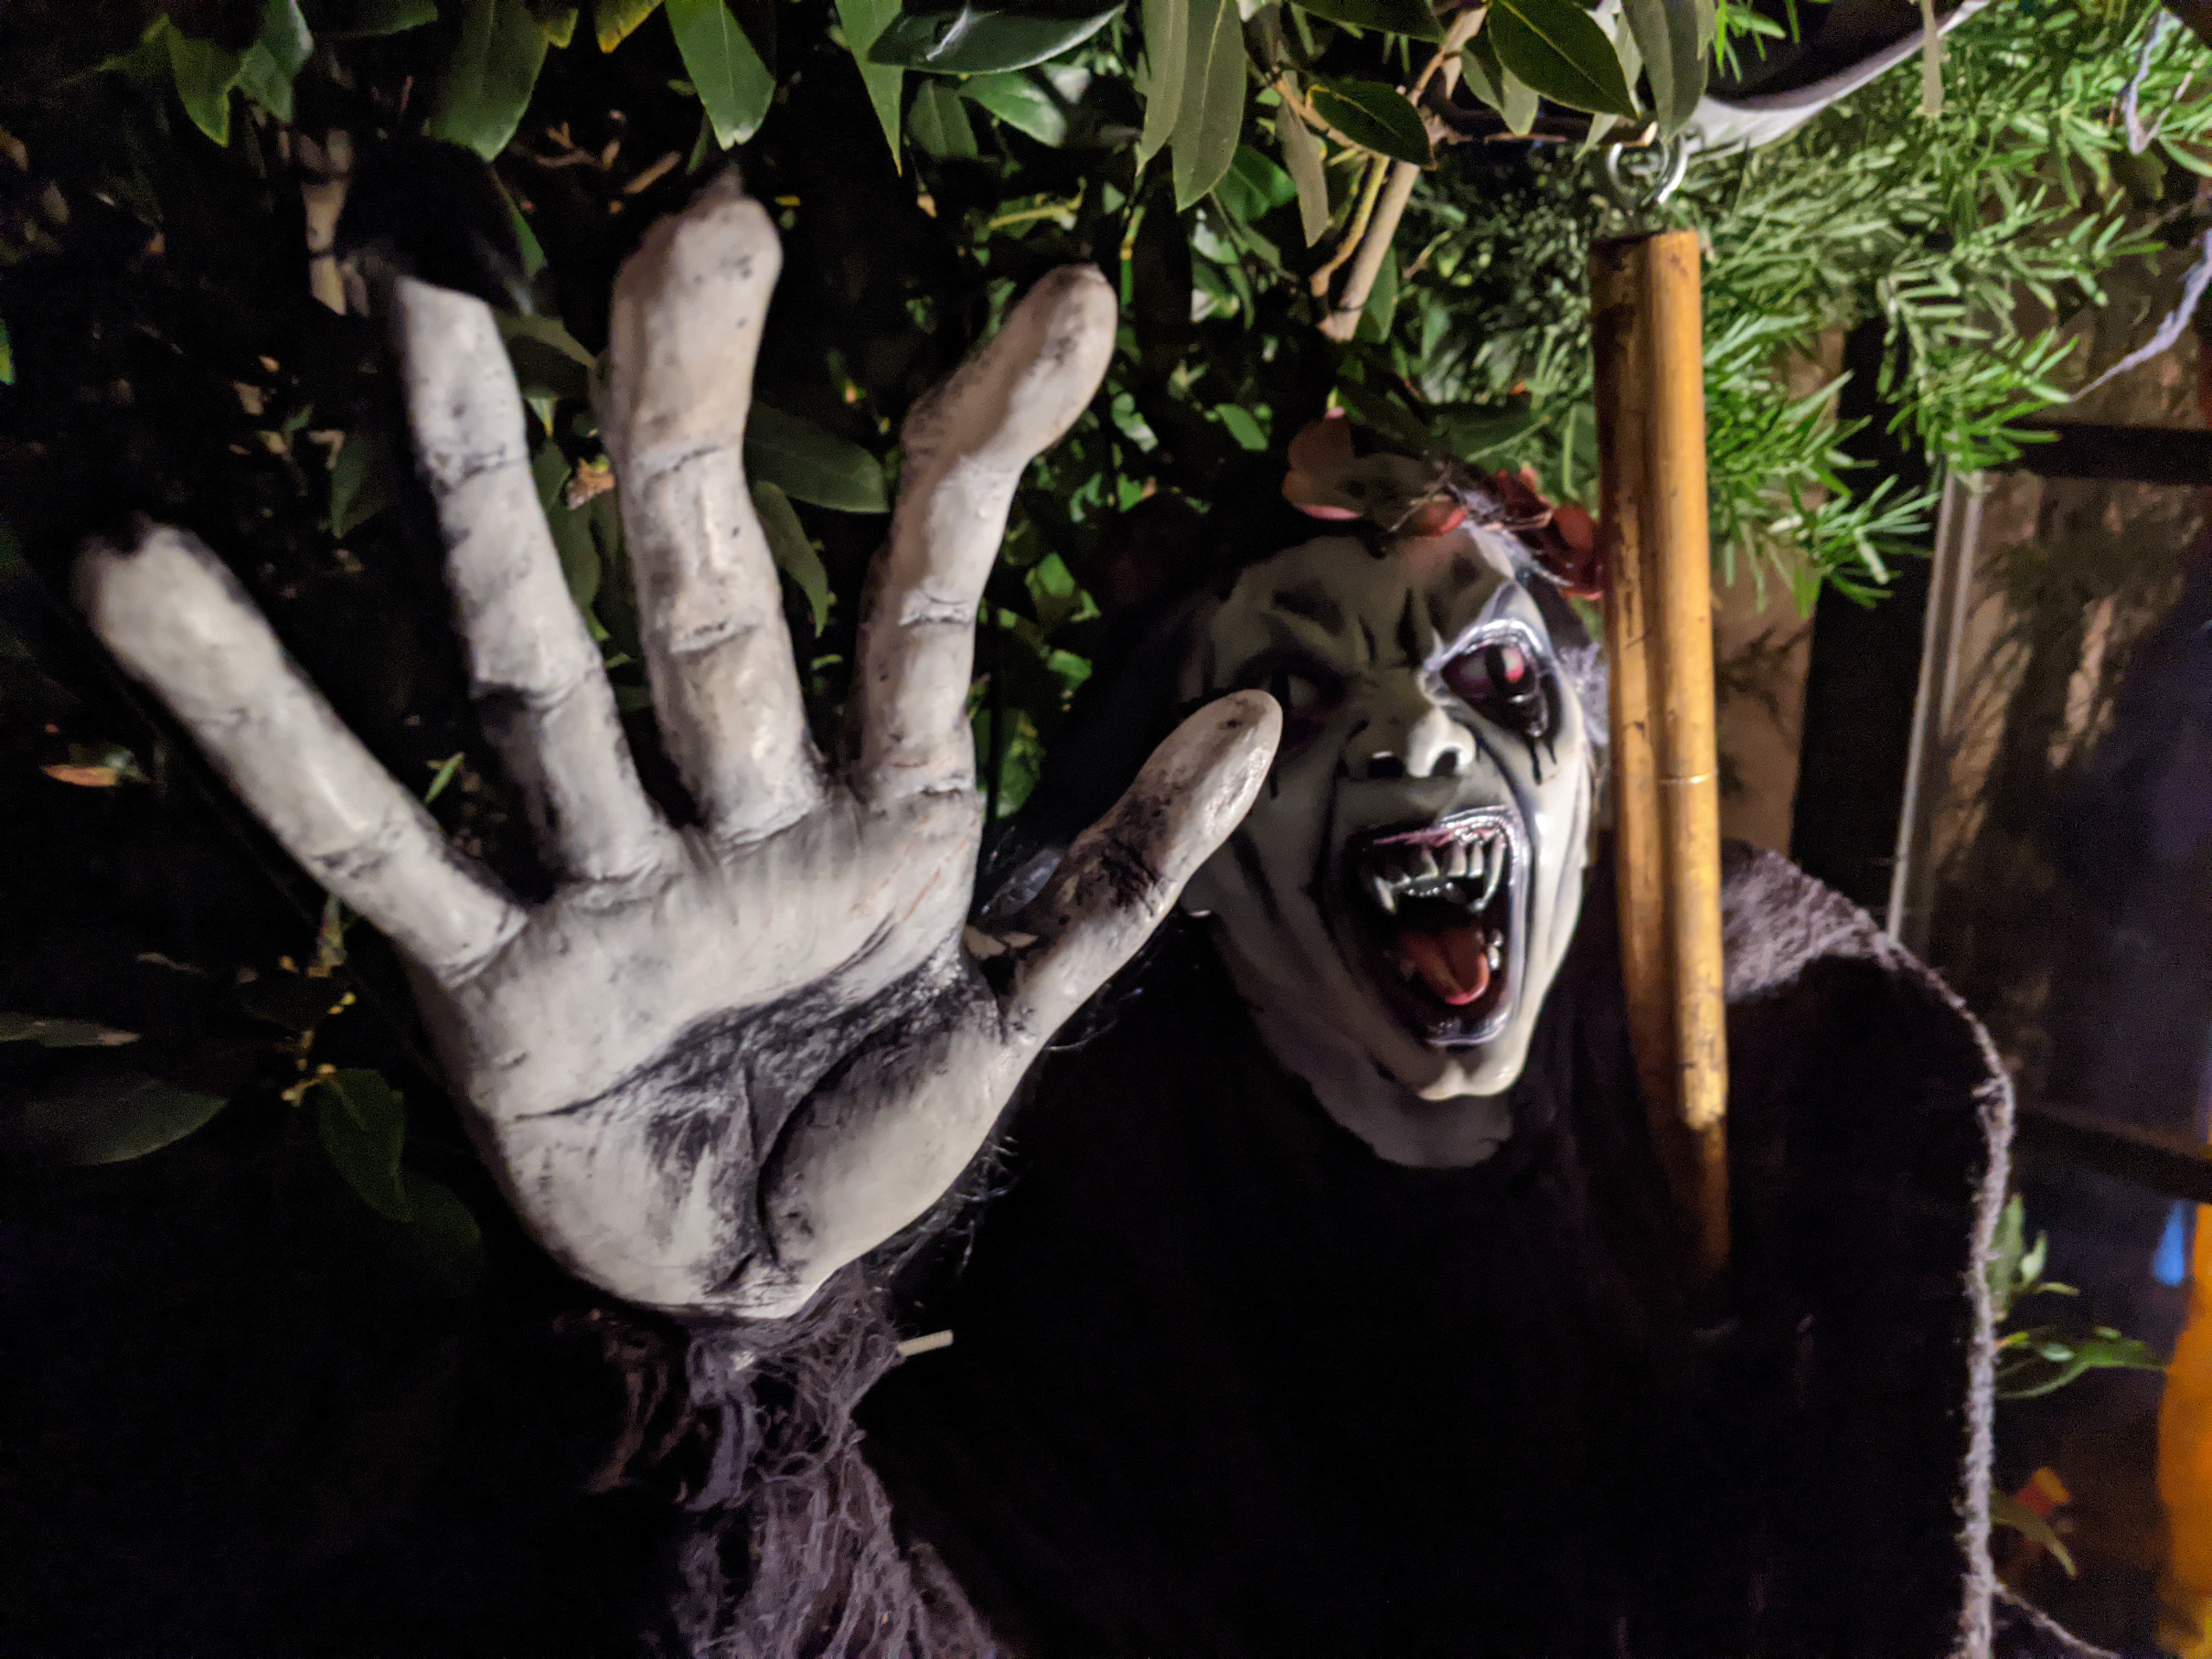 scary Halloween activities decorations los angeles 2020 those someday goals